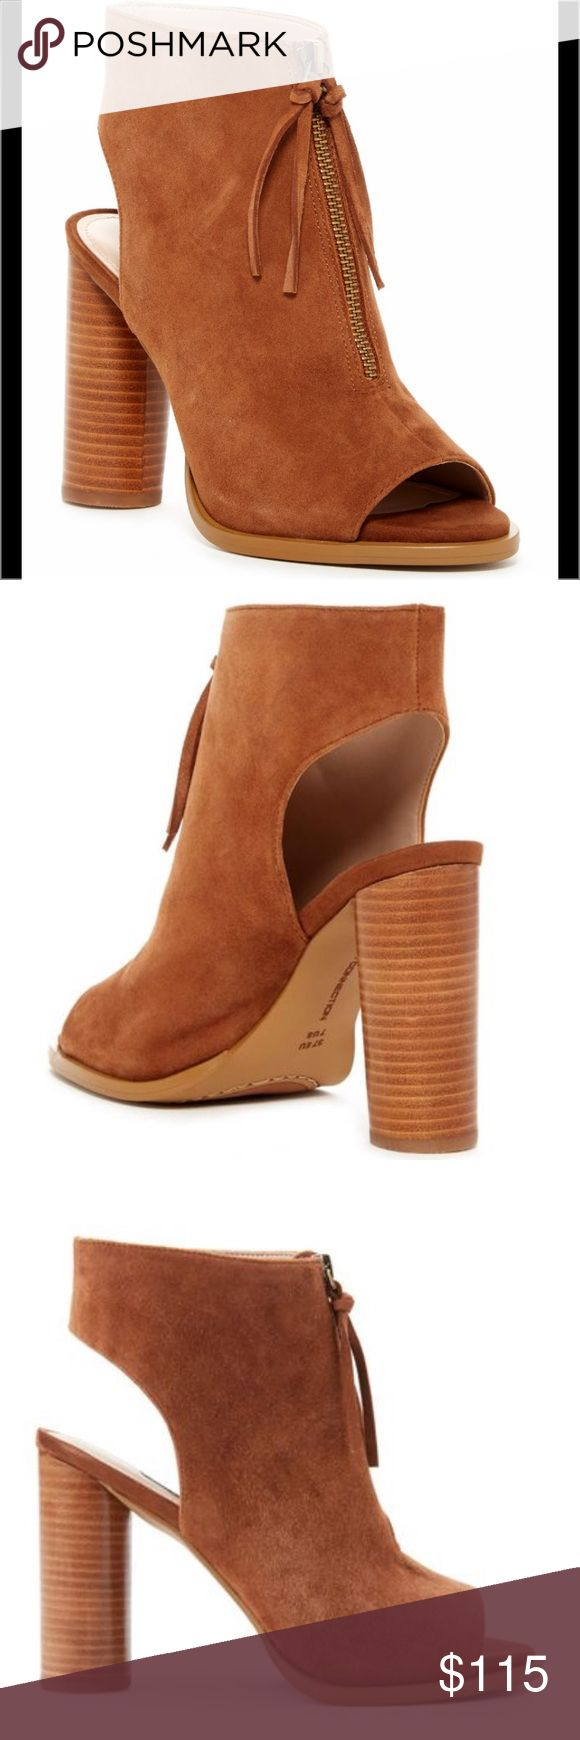 FRENCH CONNECTION Uttara Open Toe Tan Booties Brand new with box never been worn before. Open toe zip up with cute tassel detail on zipper. These are slip on for easy on and off with Cutout heel counter. Heel height is about 4 inches tall and shaft height is about 3 inches. Suede upper with a manmade sole. French Connection Shoes Ankle Boots & Booties